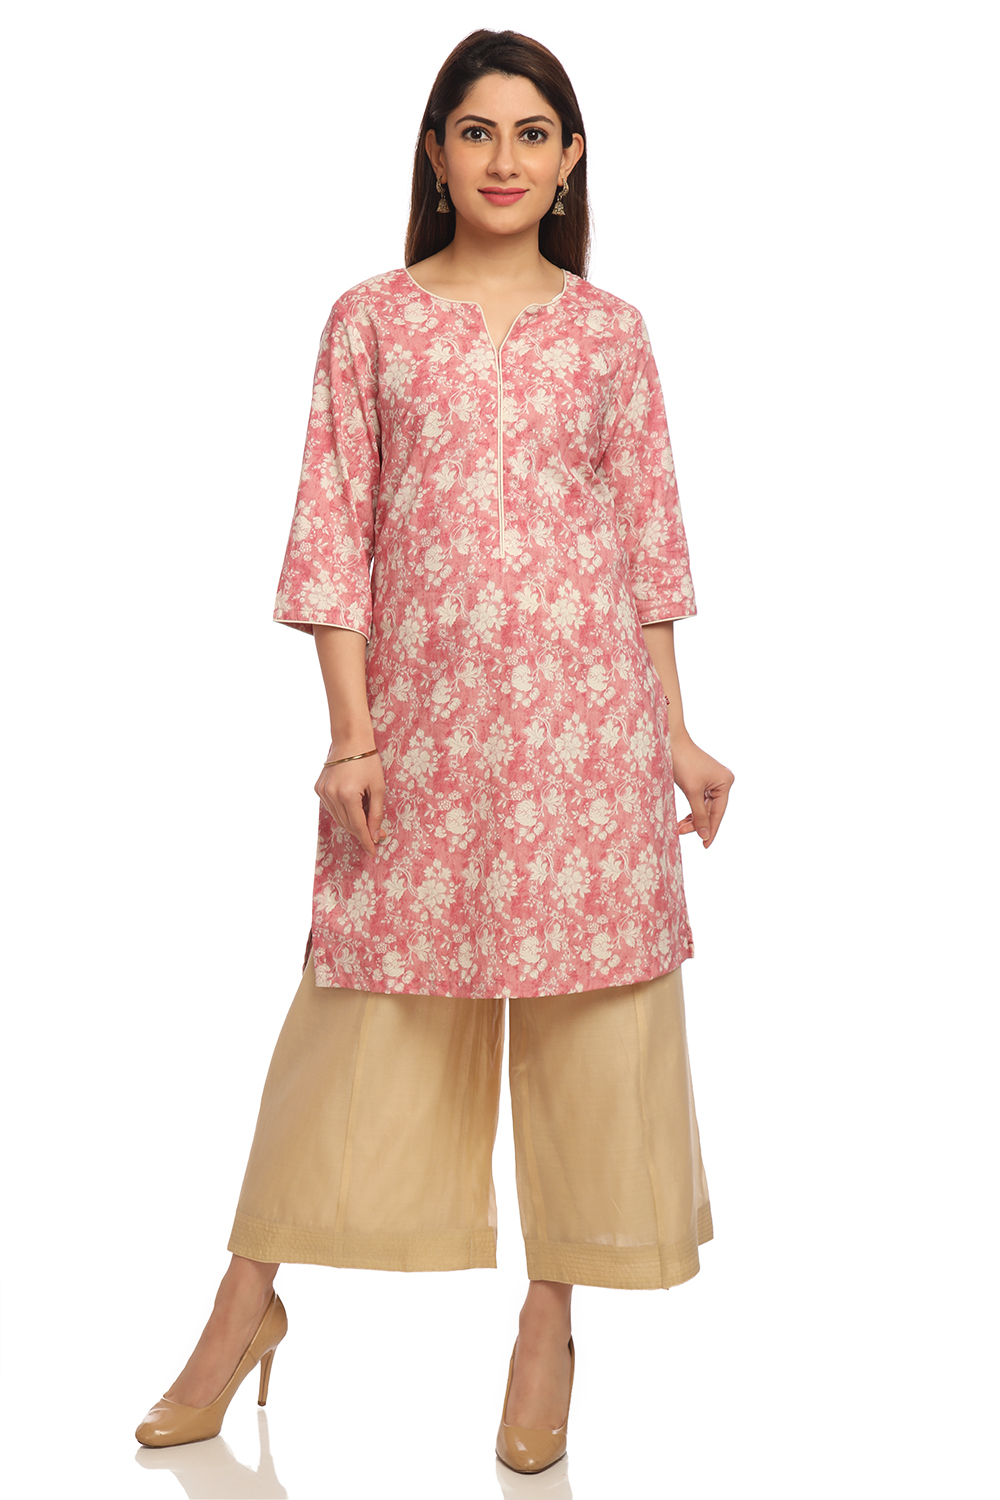 f6e37d85c6 Buy Online Onion Pink Straight Cotton Kurta for Women & Girls at Best  Prices in Biba India-CAFEPIN1